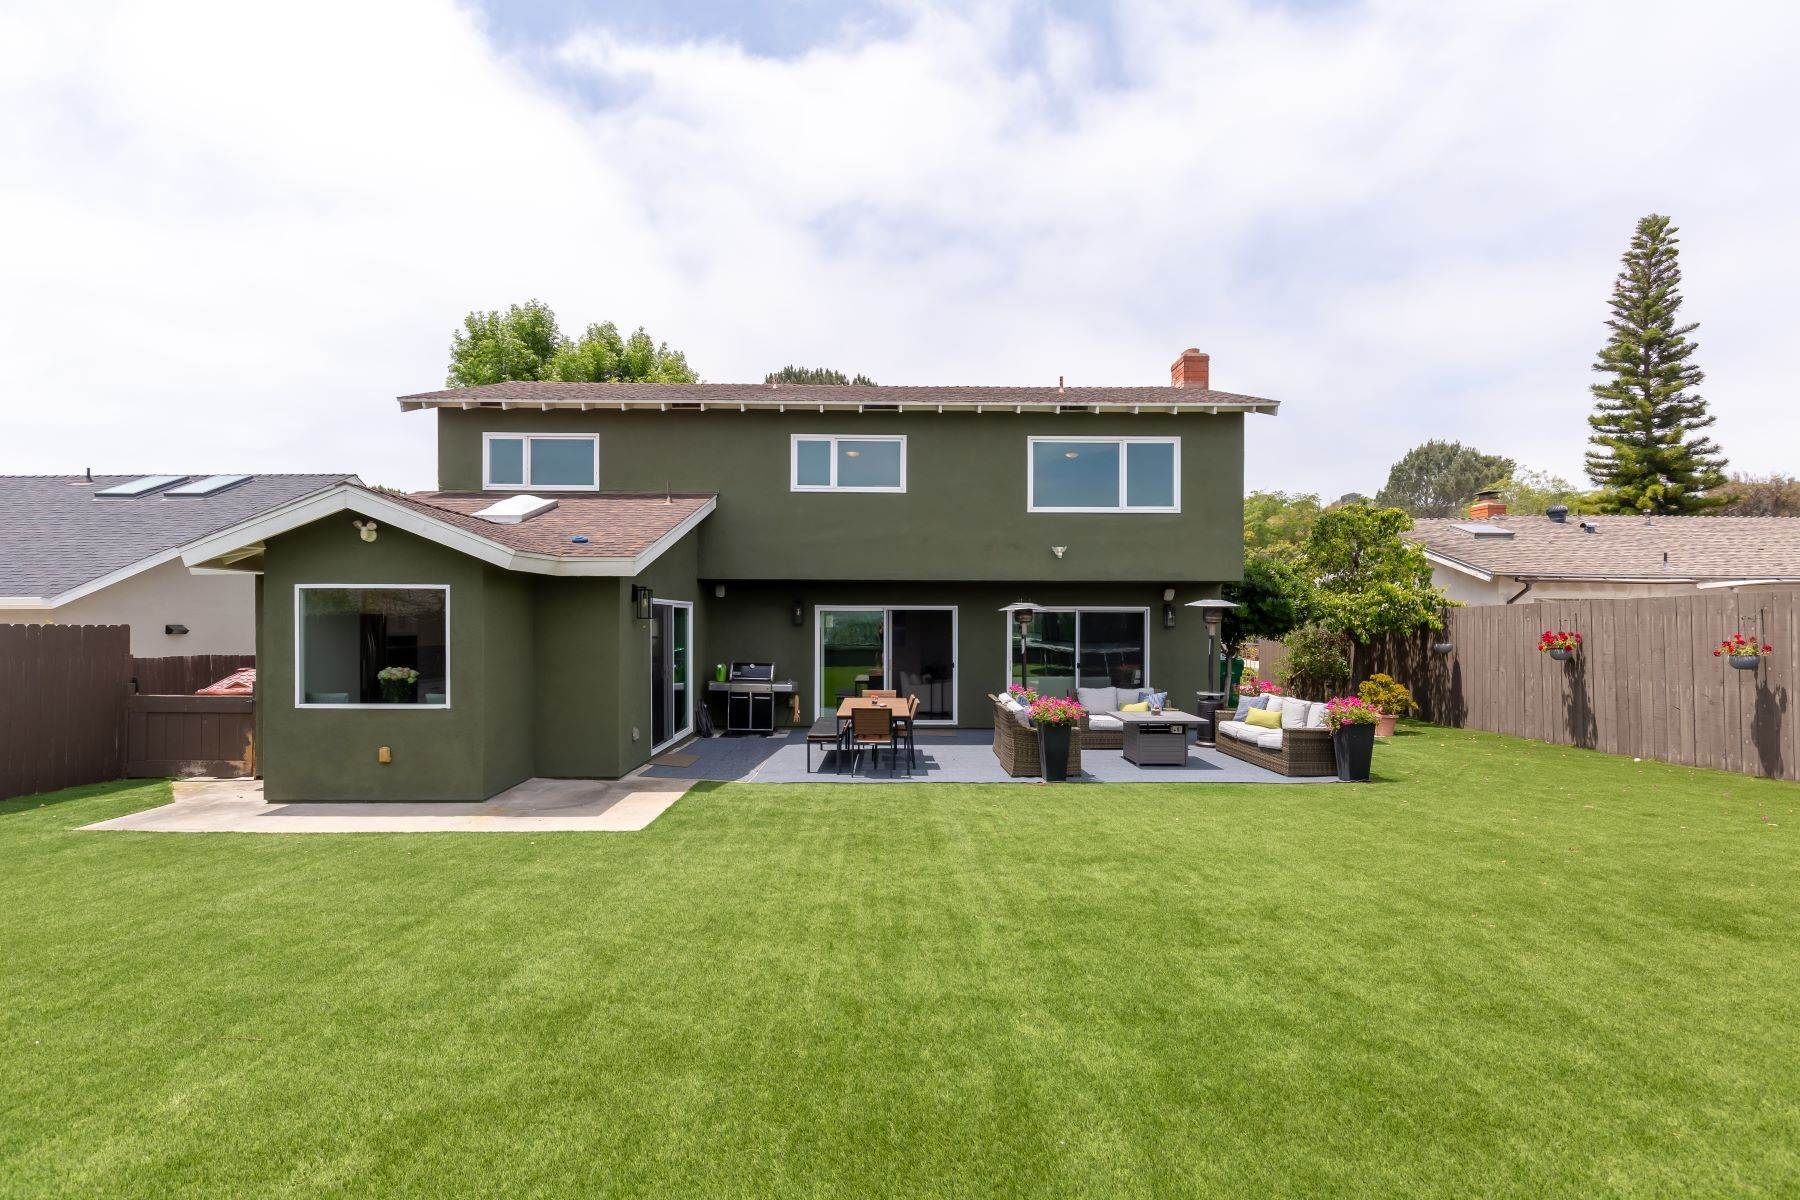 30. Single Family Homes for Sale at 13475 Portofino Drive, Del Mar, CA 92014 13475 Portofino Drive Del Mar, California 92014 United States